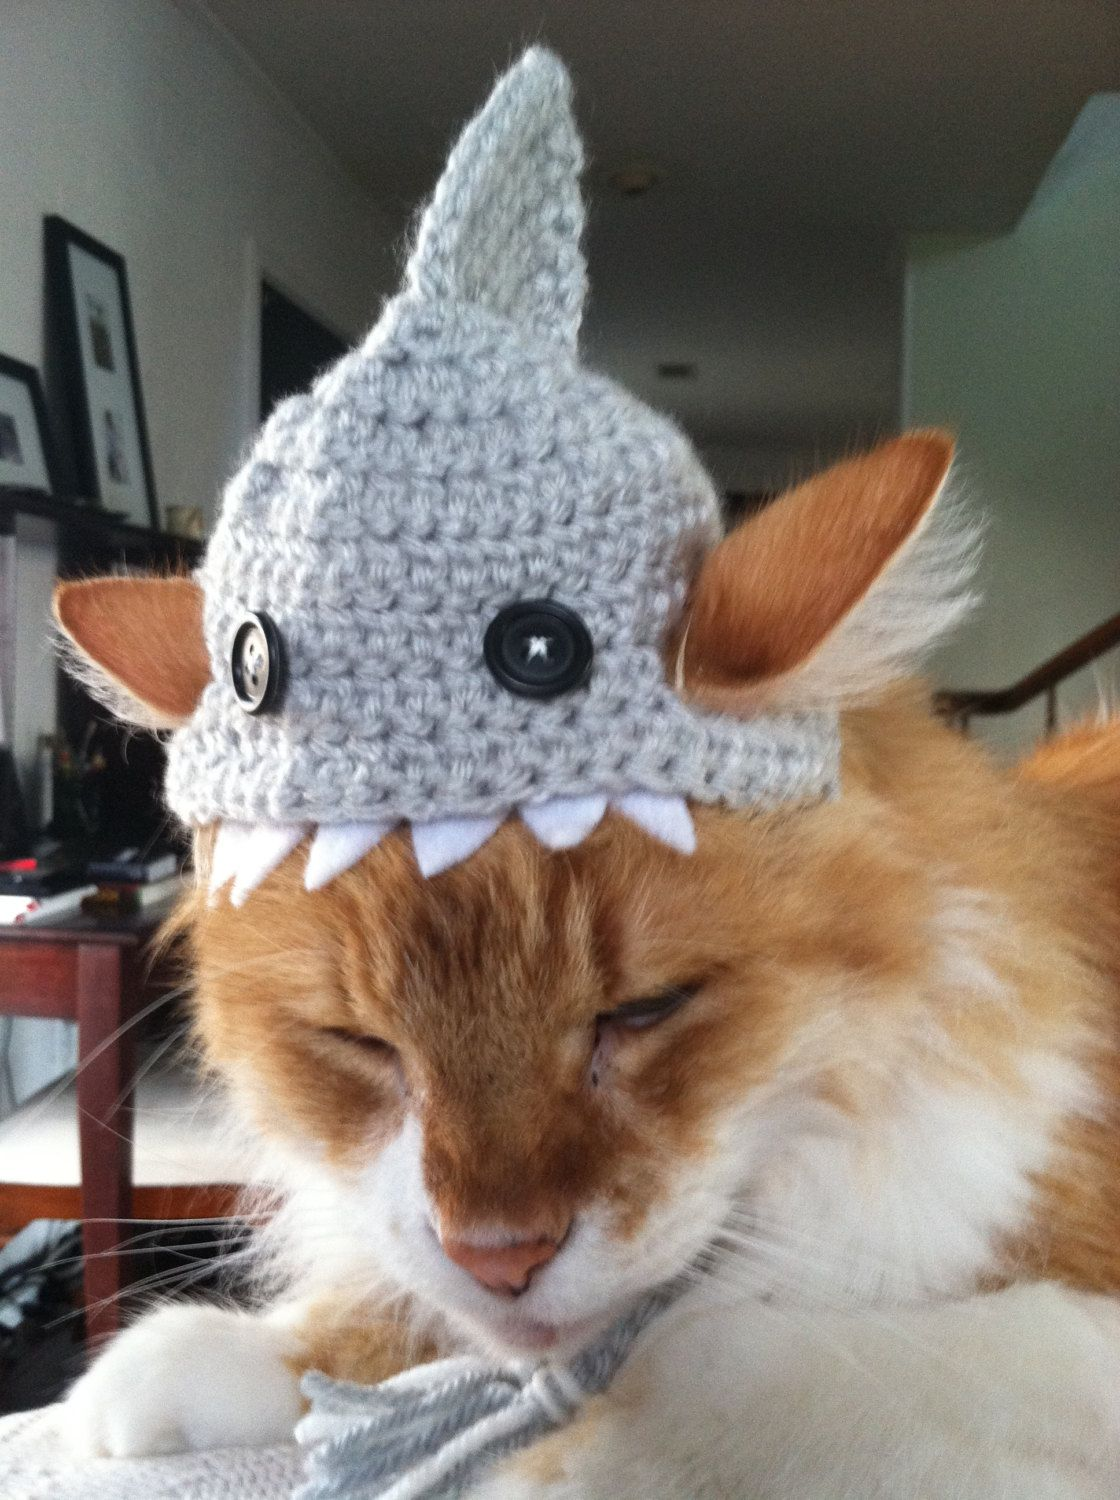 Crocheted Shark Hat for Cats by TheBloomingPot on Etsy